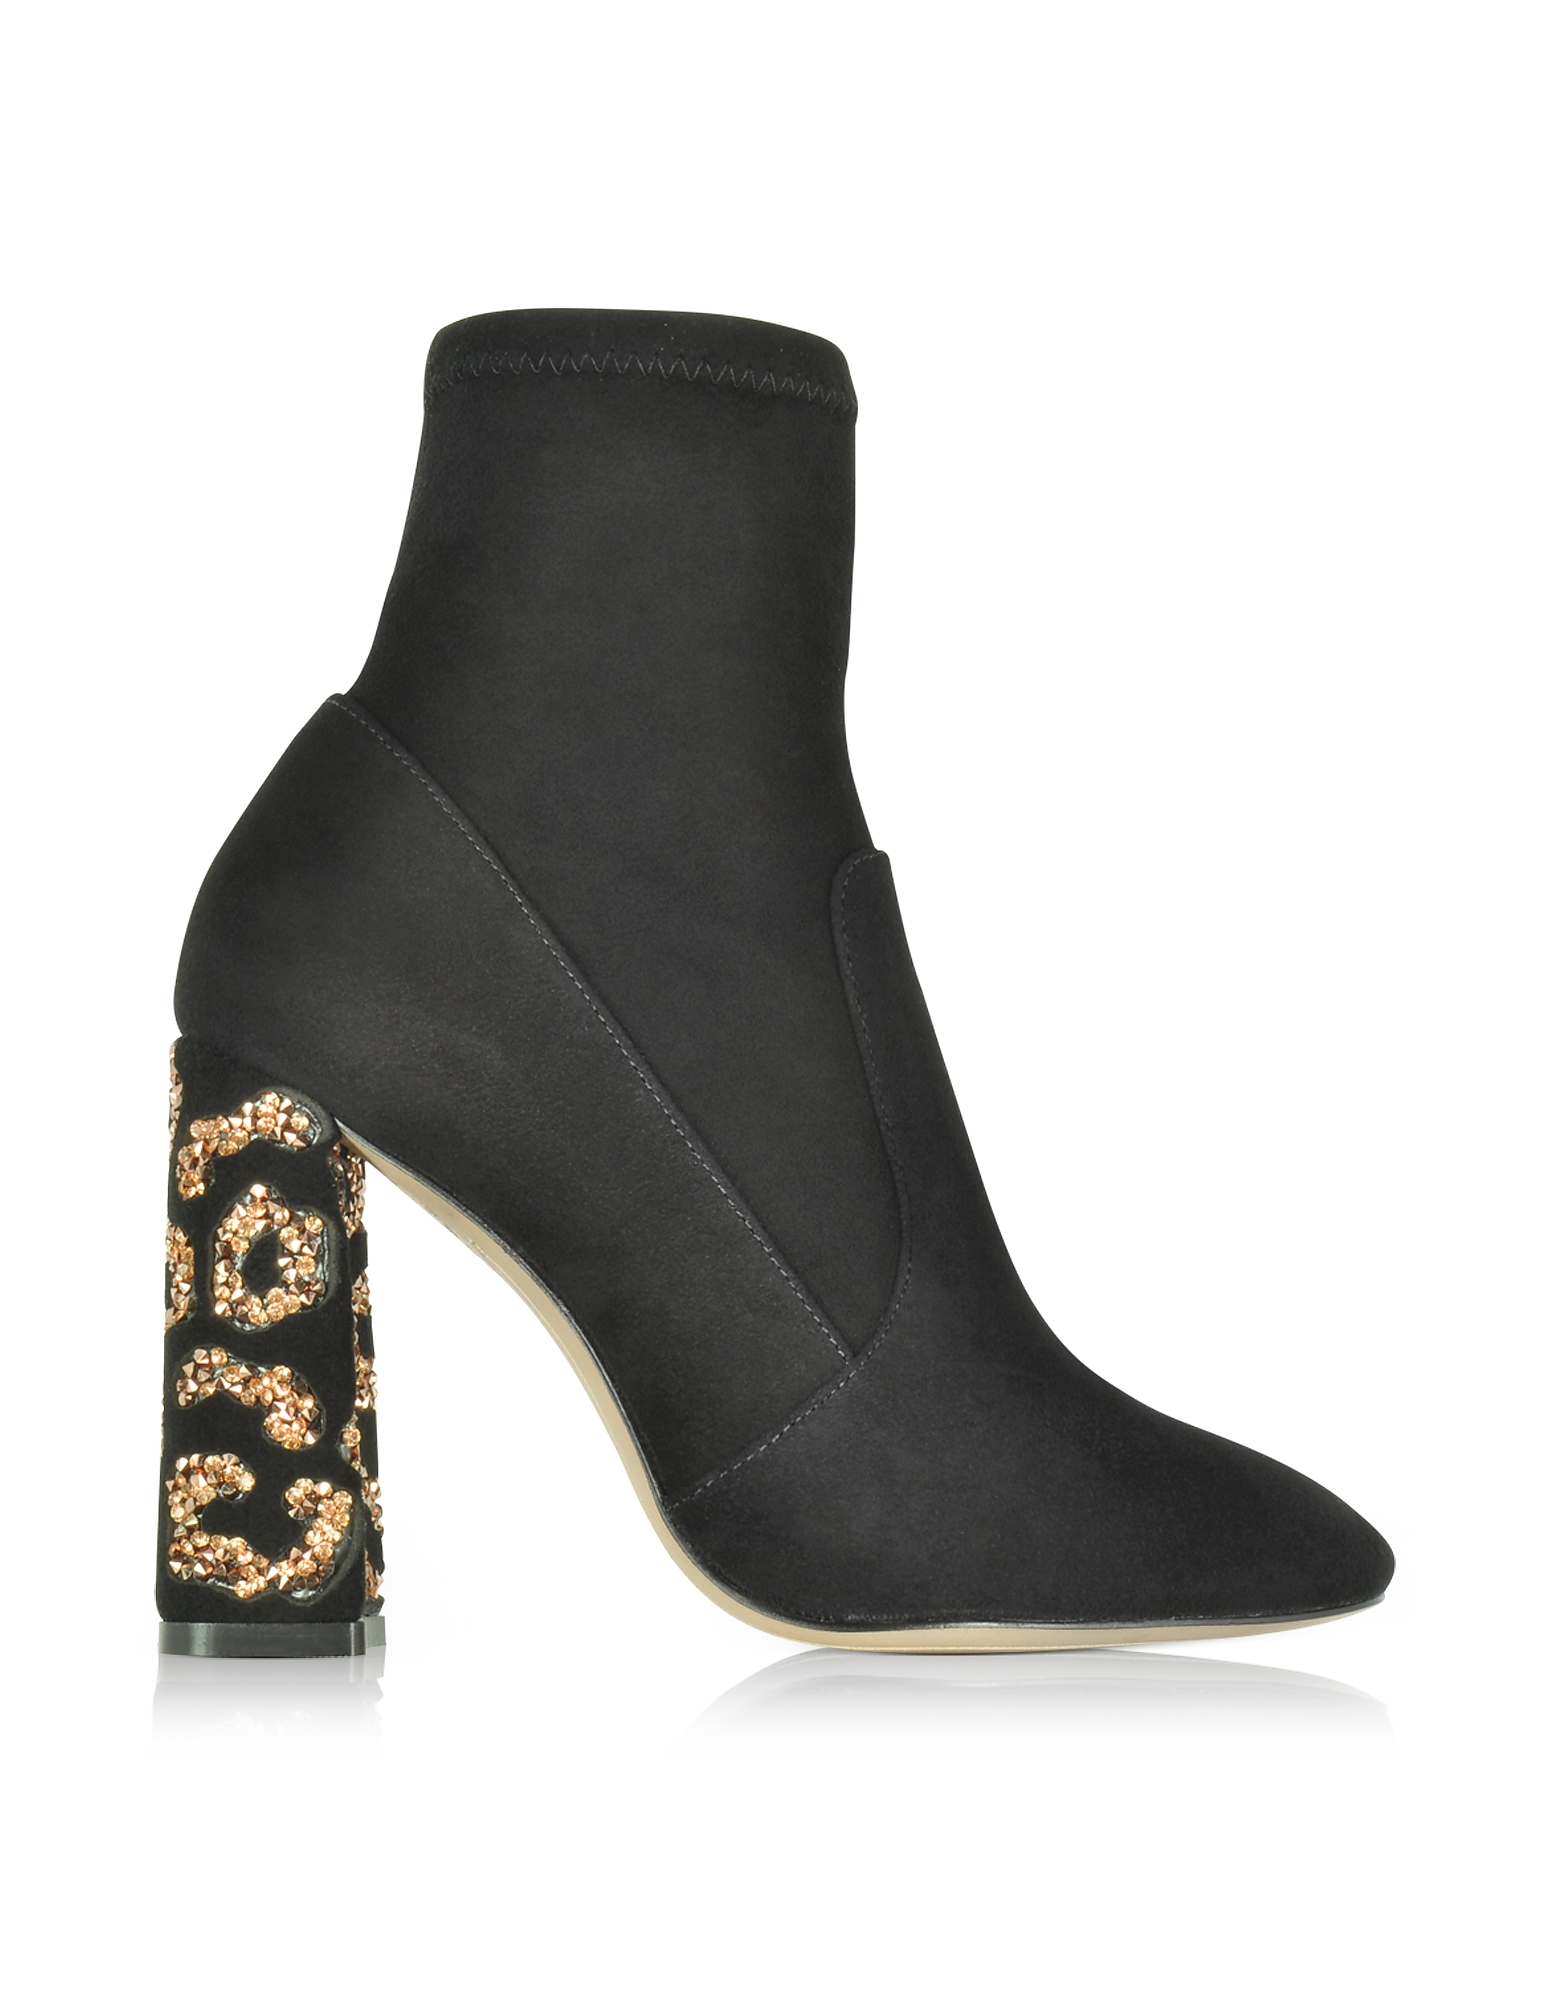 Sophia Webster Shoes, Black Felicity Leopard Ankle Boots w/Crystals